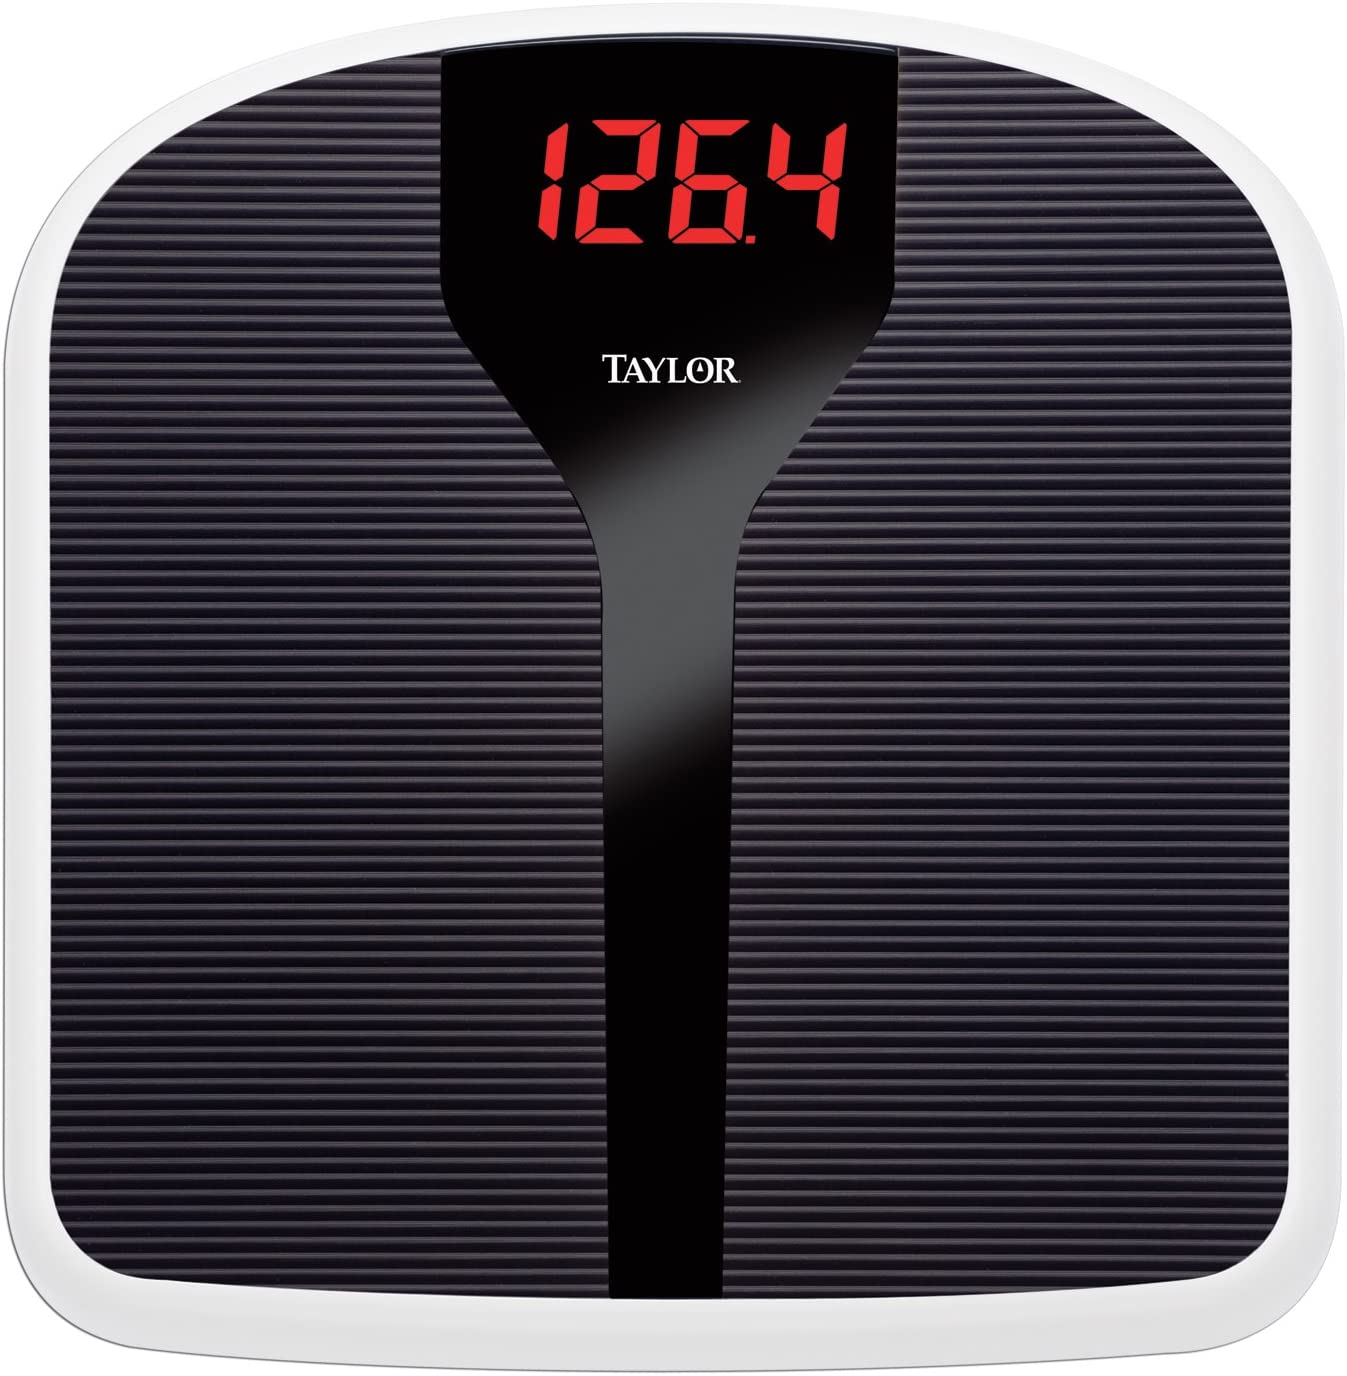 Taylor Precision Products SuperBrite LED Electronic Digital Scale